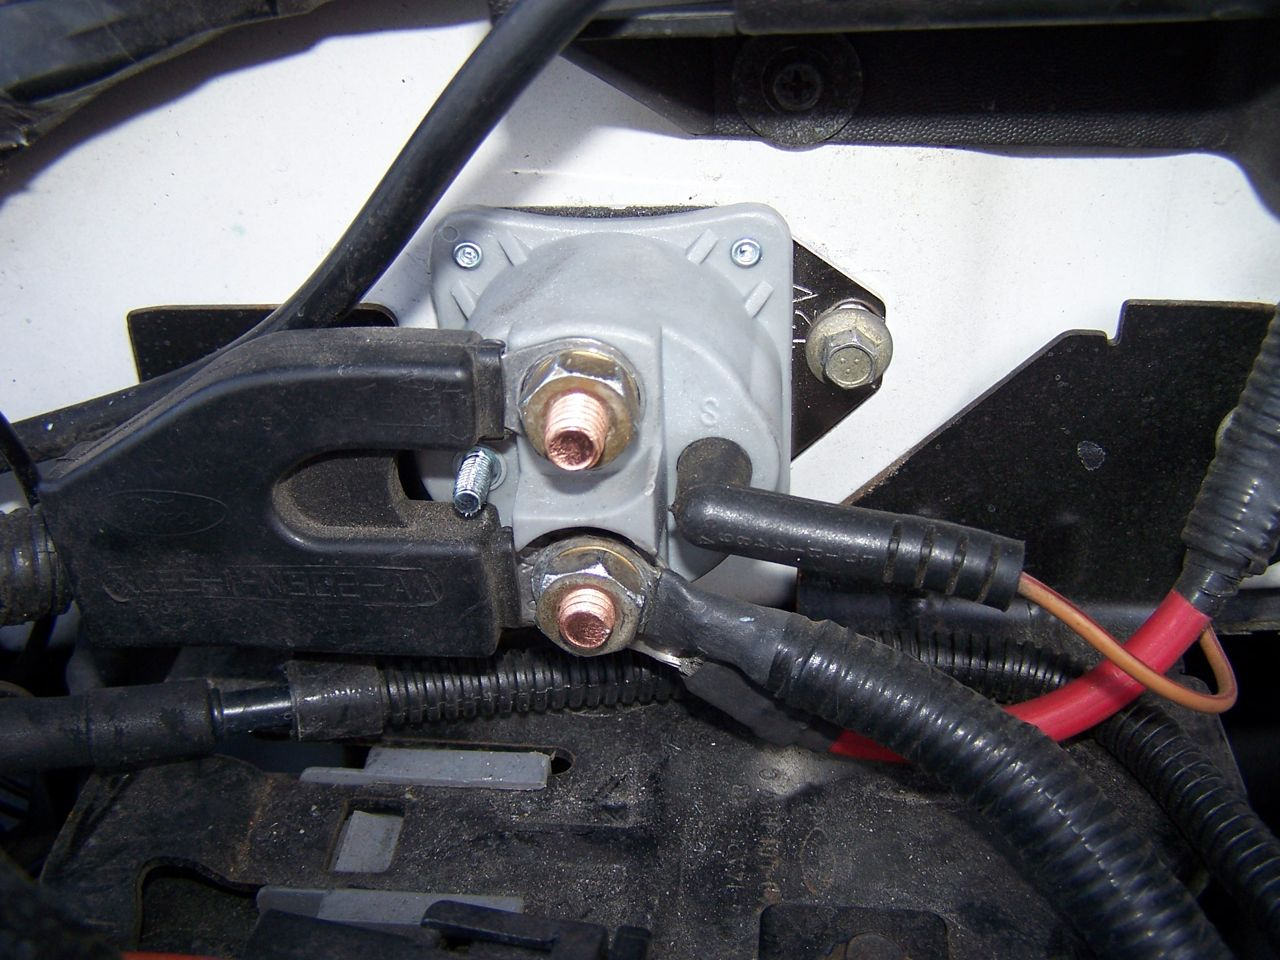 I Am Looking For A Diagram On The Wiring Of A 2001 Ford Expedition - Ford F150 Starter Solenoid Wiring Diagram